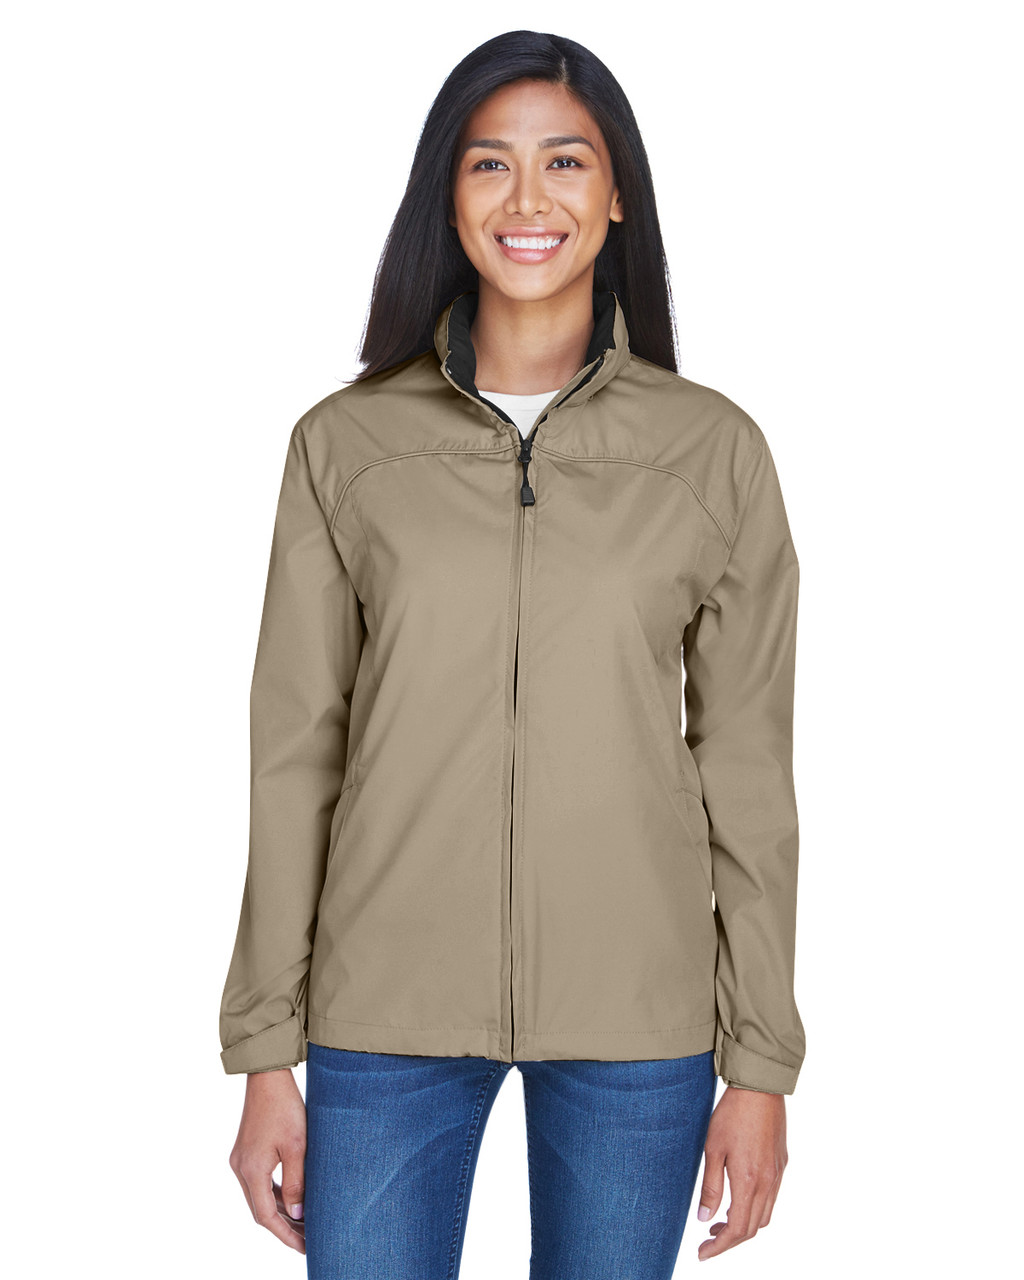 Putty Black - 78032 North End Ladies' Techno Lite Jacket | BlankClothing.ca